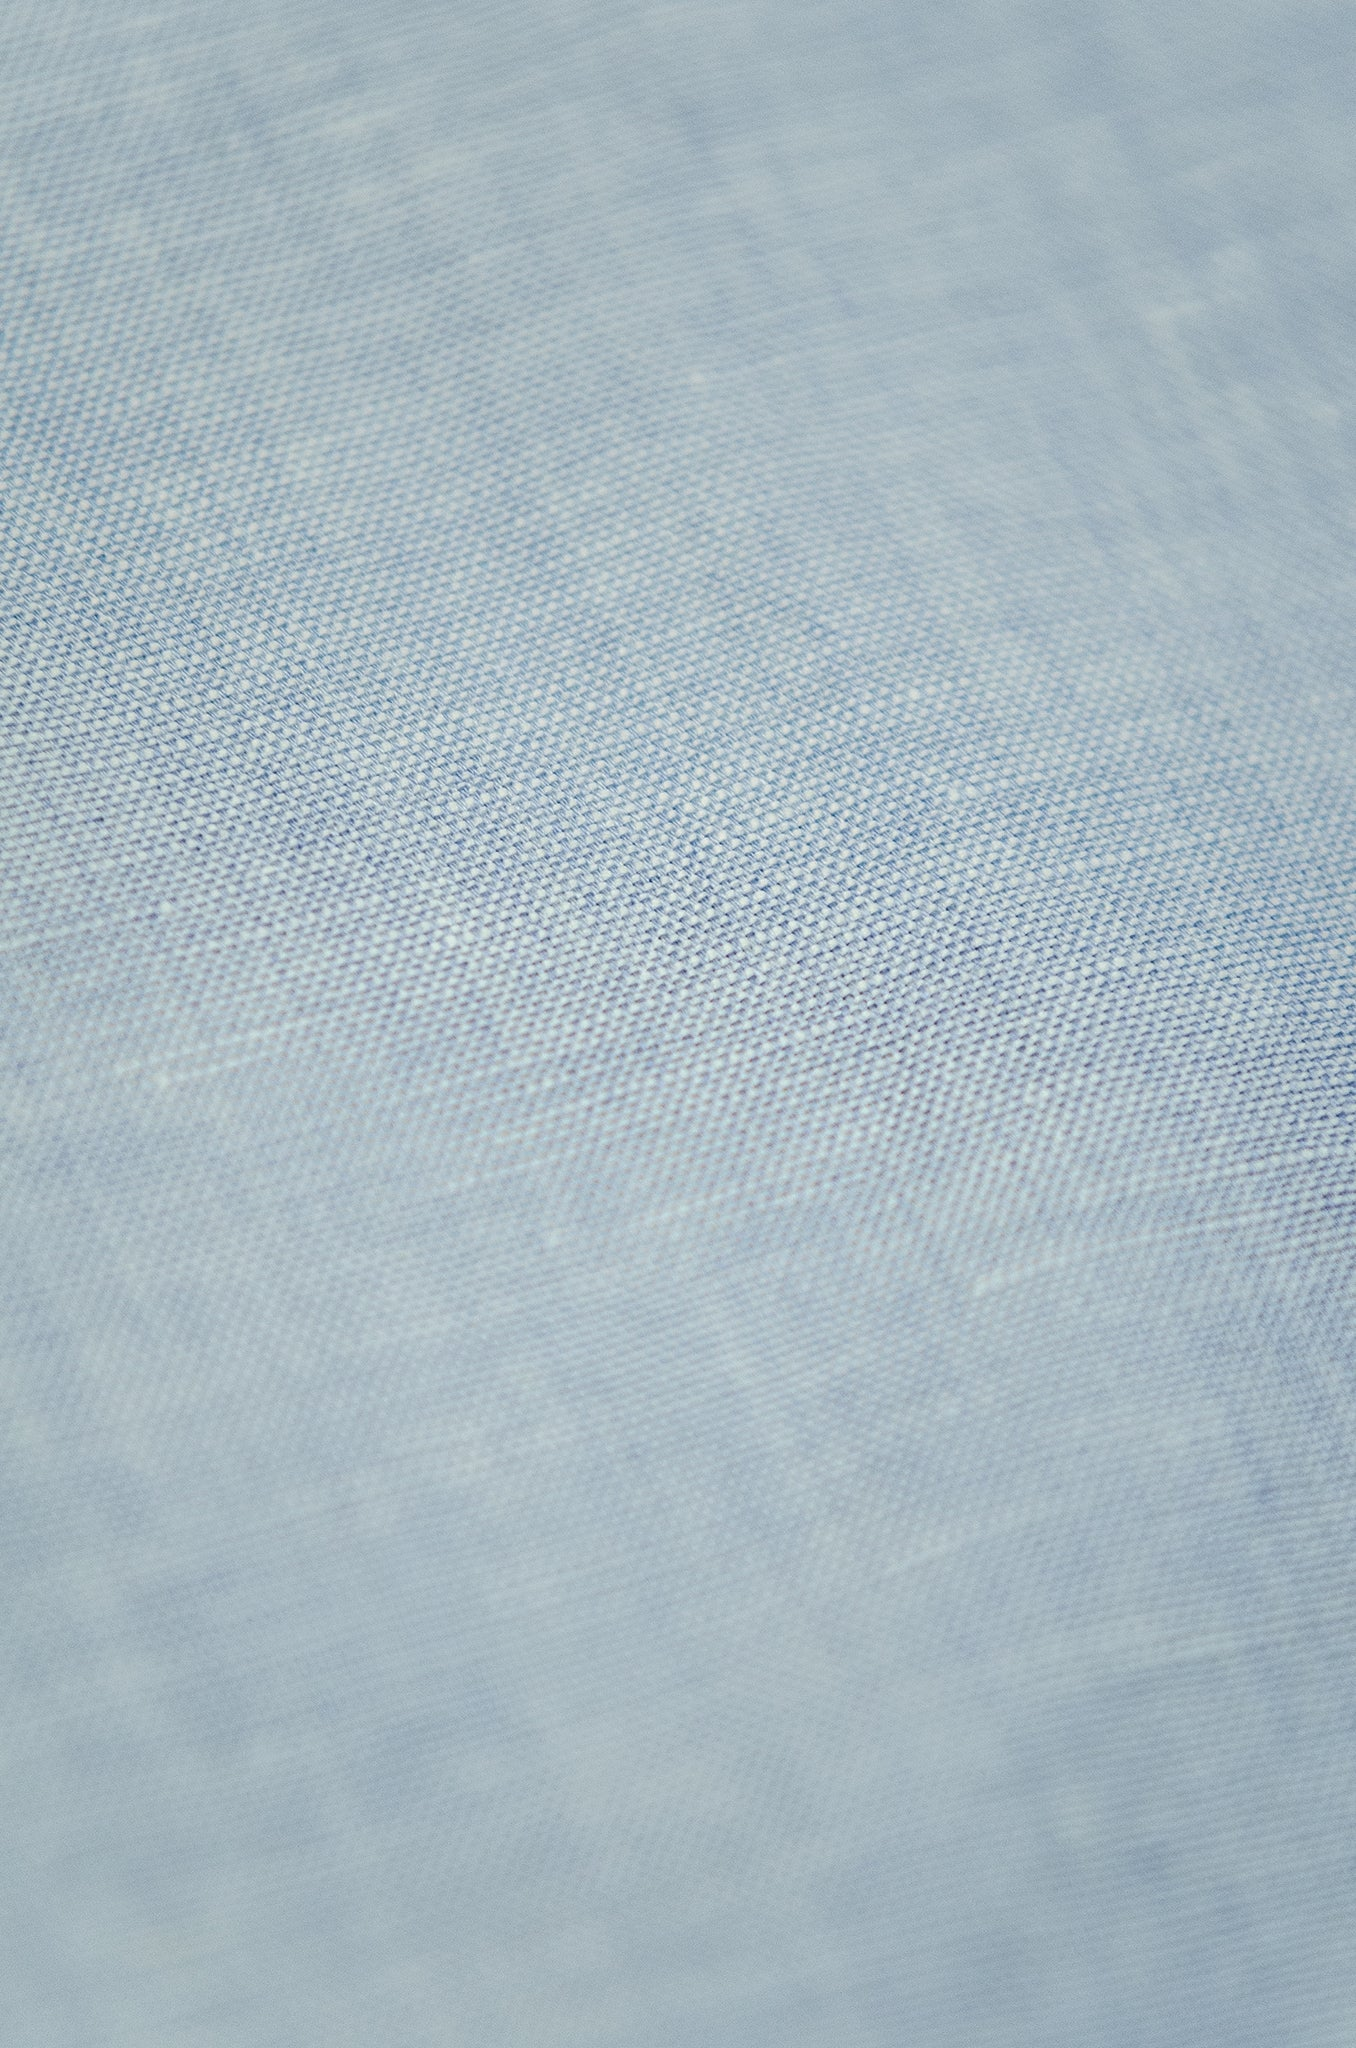 Clodoveu long-sleeved shirt in master oxford linen (sky blue)